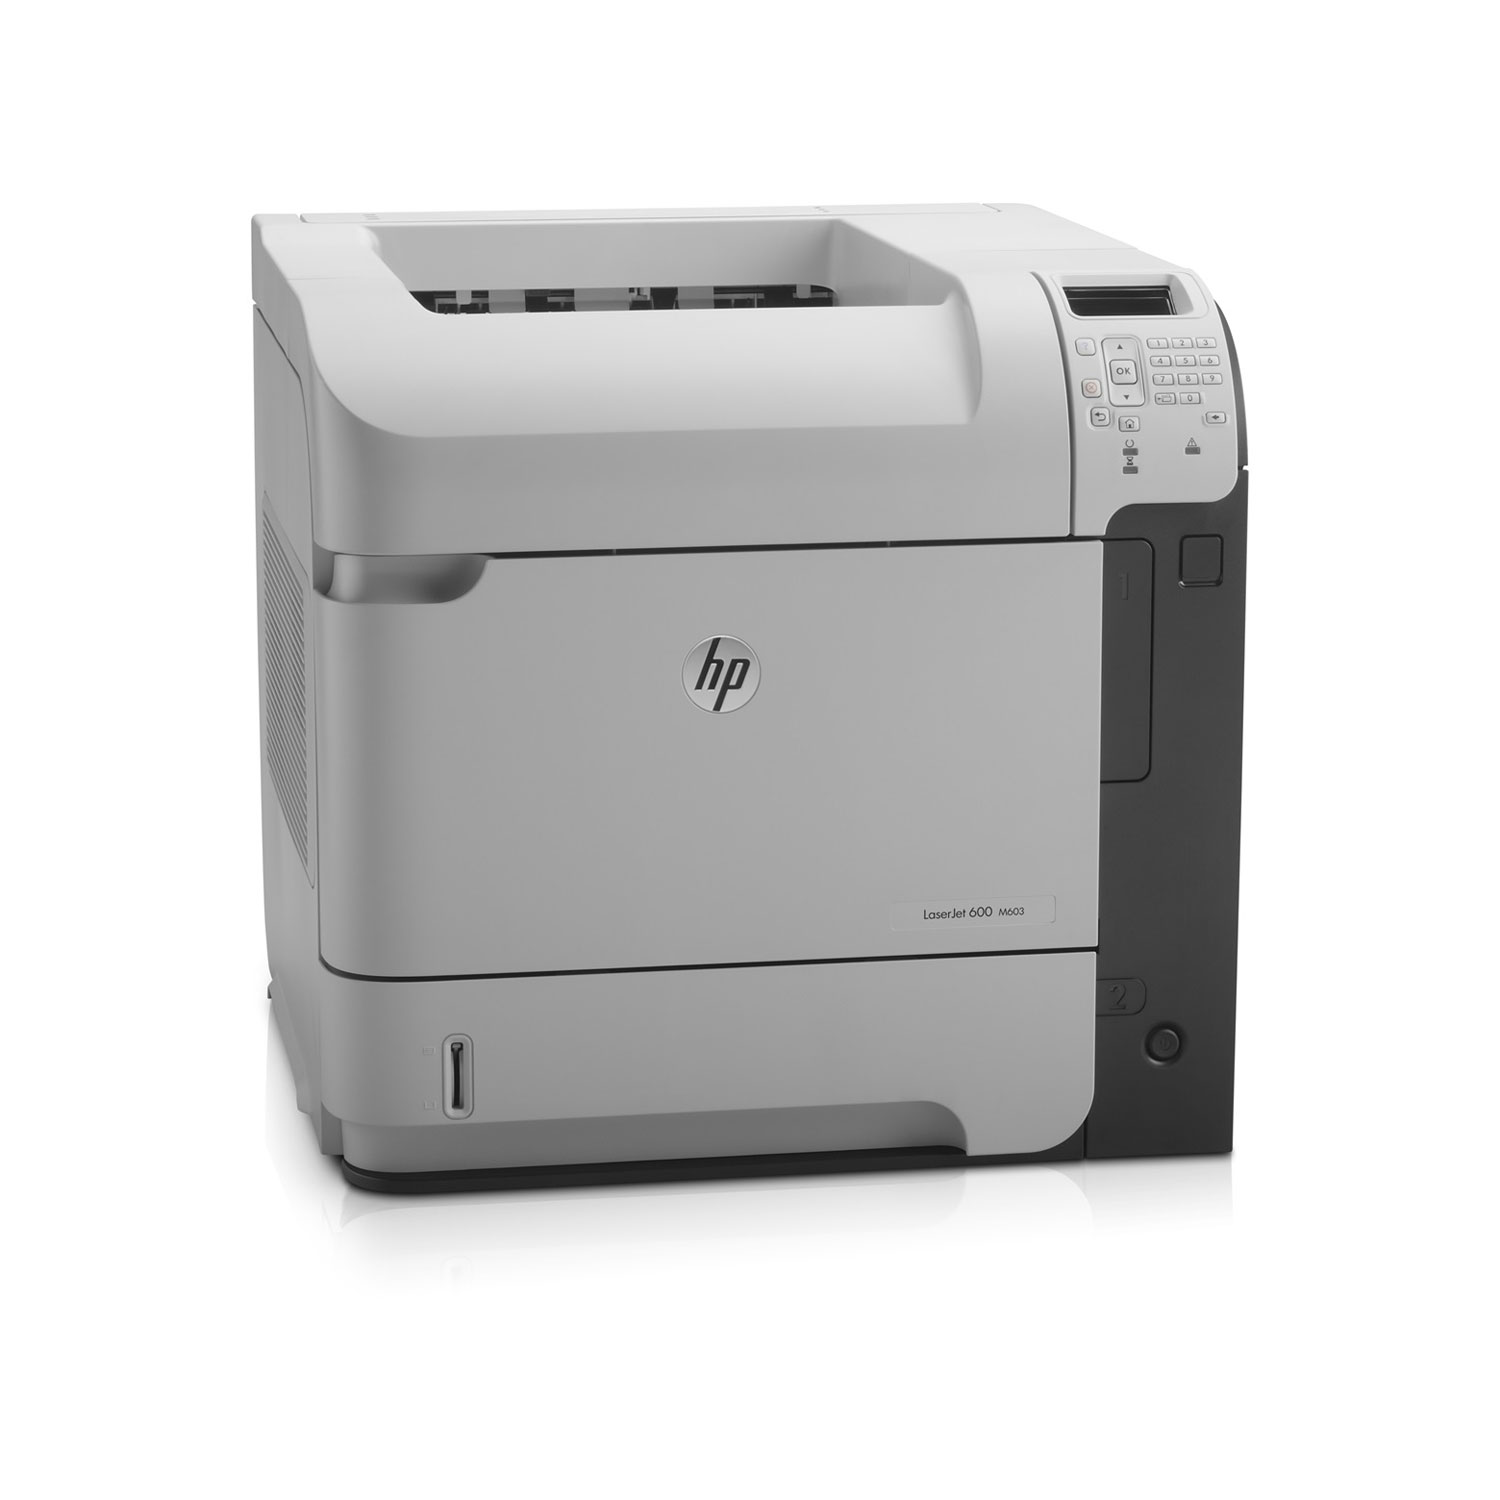 hp laserjet enterprise 600 m603n imprimante laser hp sur. Black Bedroom Furniture Sets. Home Design Ideas